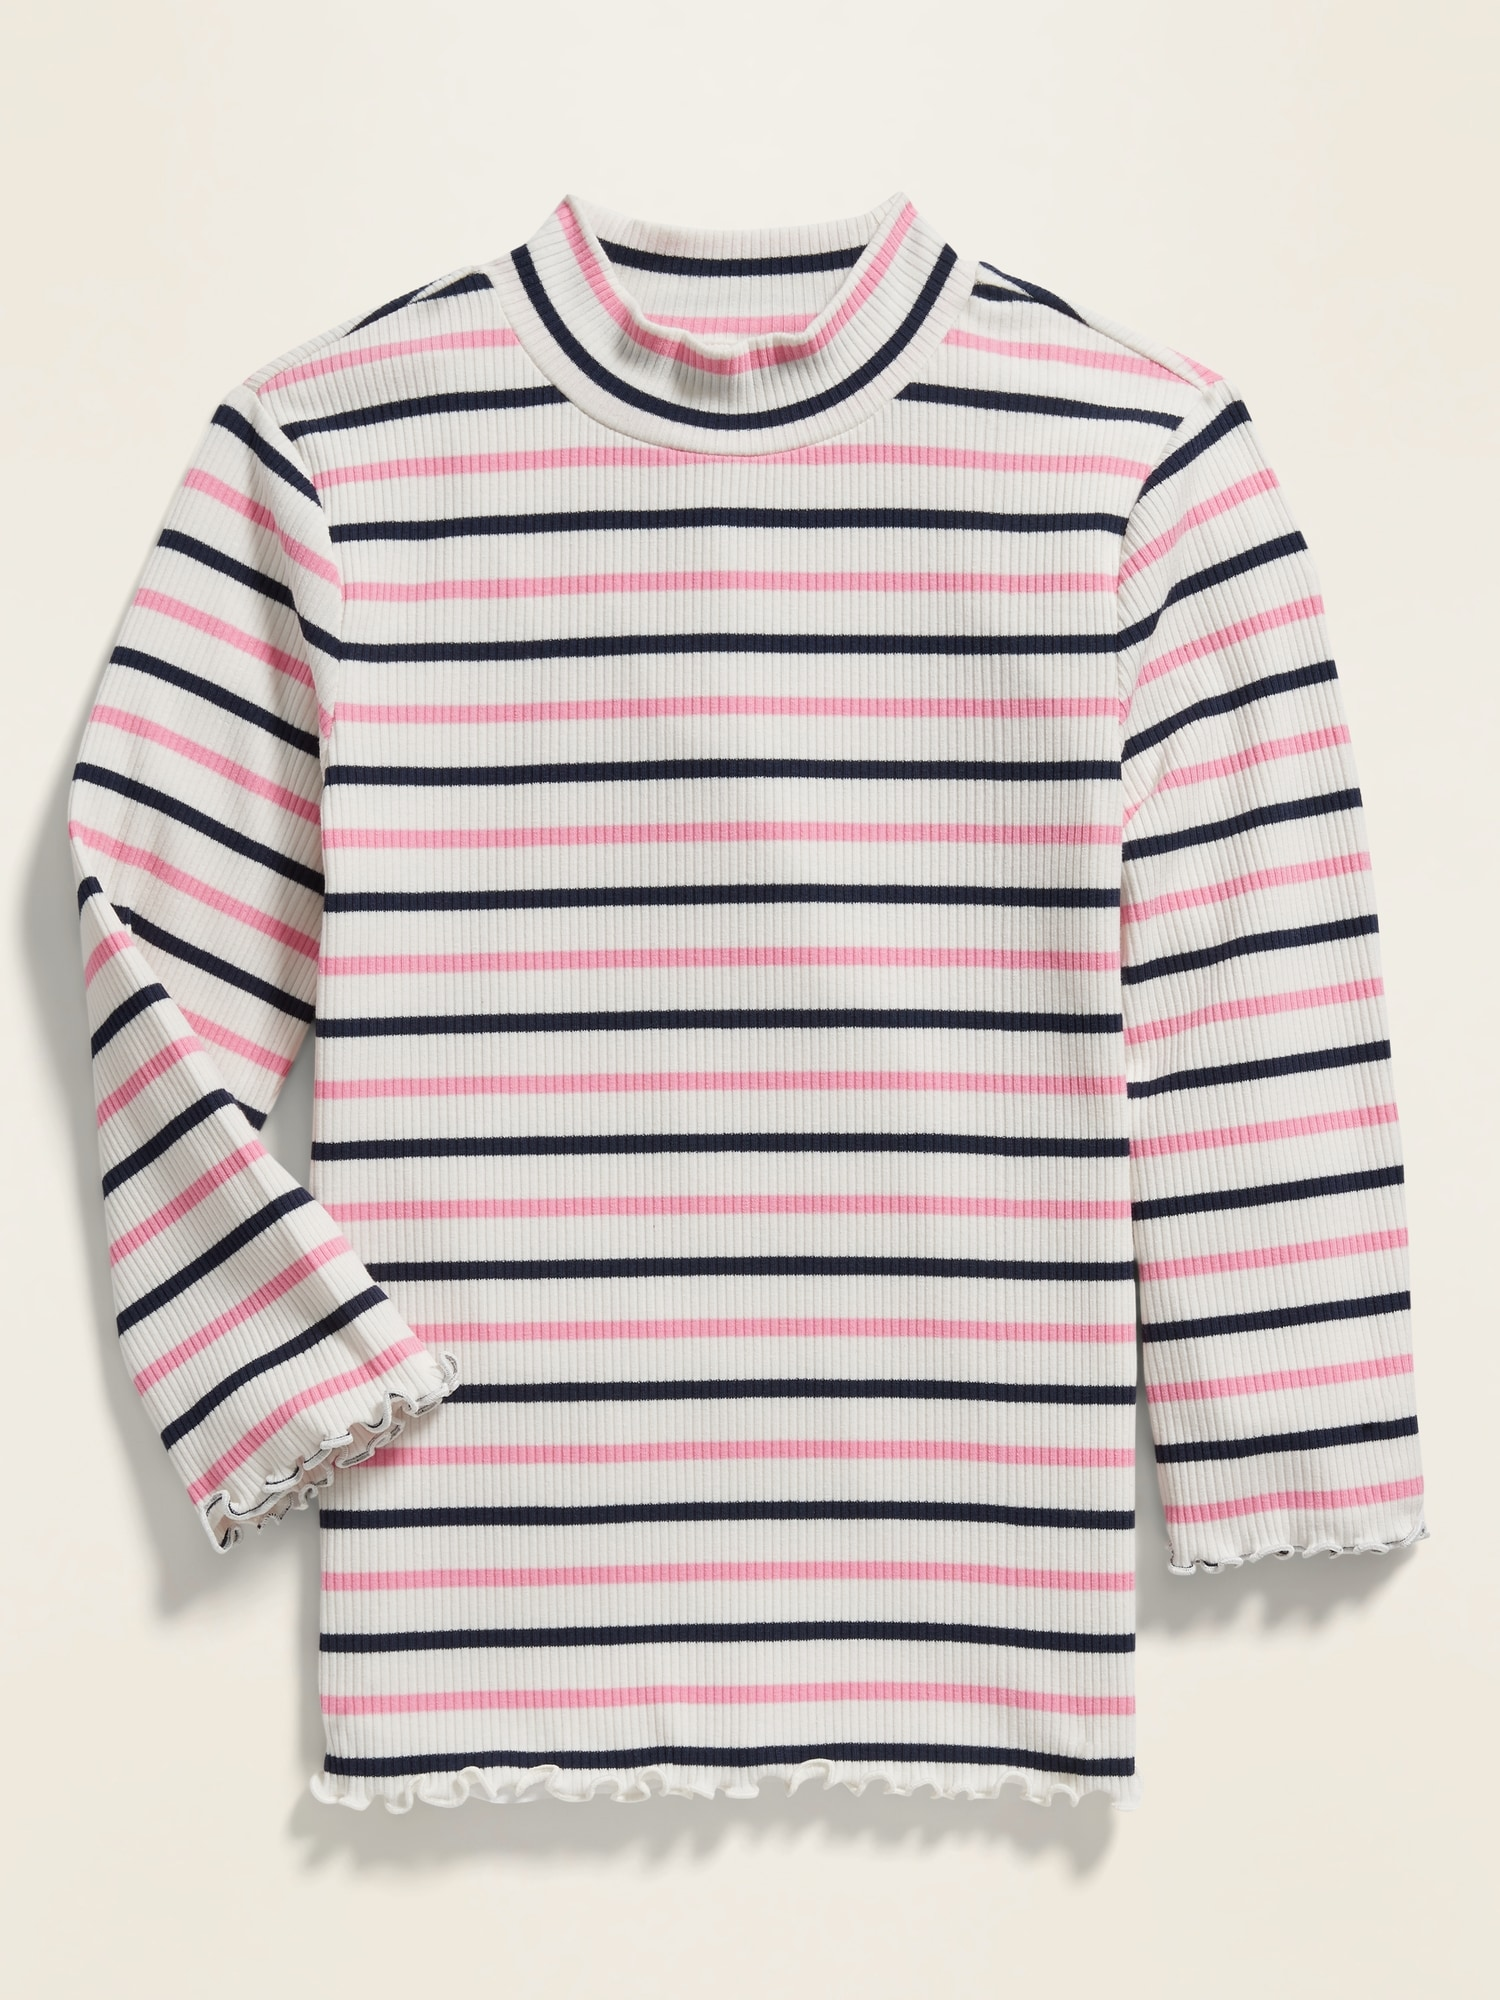 Striped Rib Knit 3/4 Sleeve Tee For Girls by Old Navy